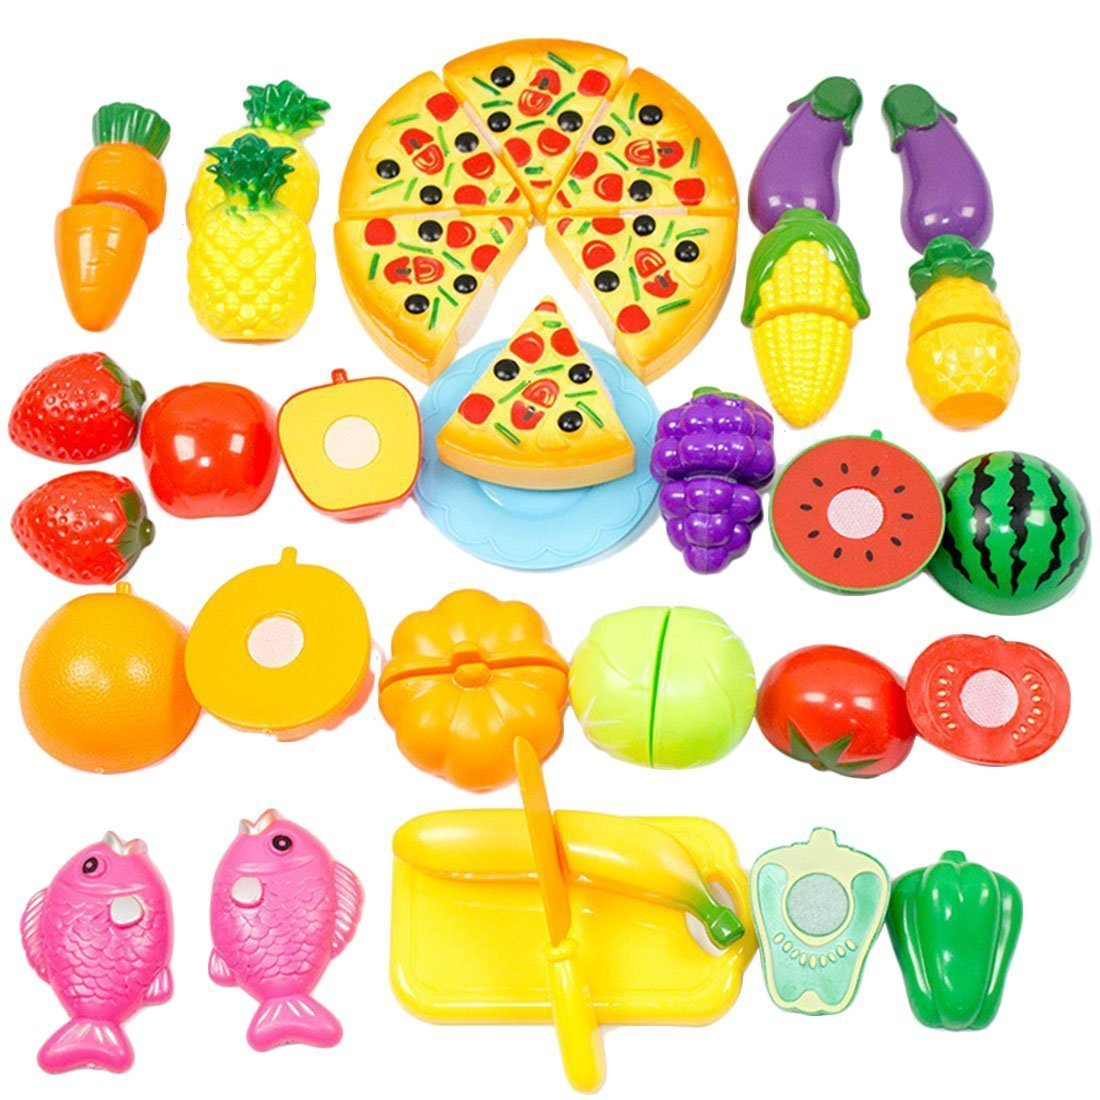 2665ac877b35 Play Food Set for Kids    Toy Food for Pretend Play - Huge 125 Piece ...